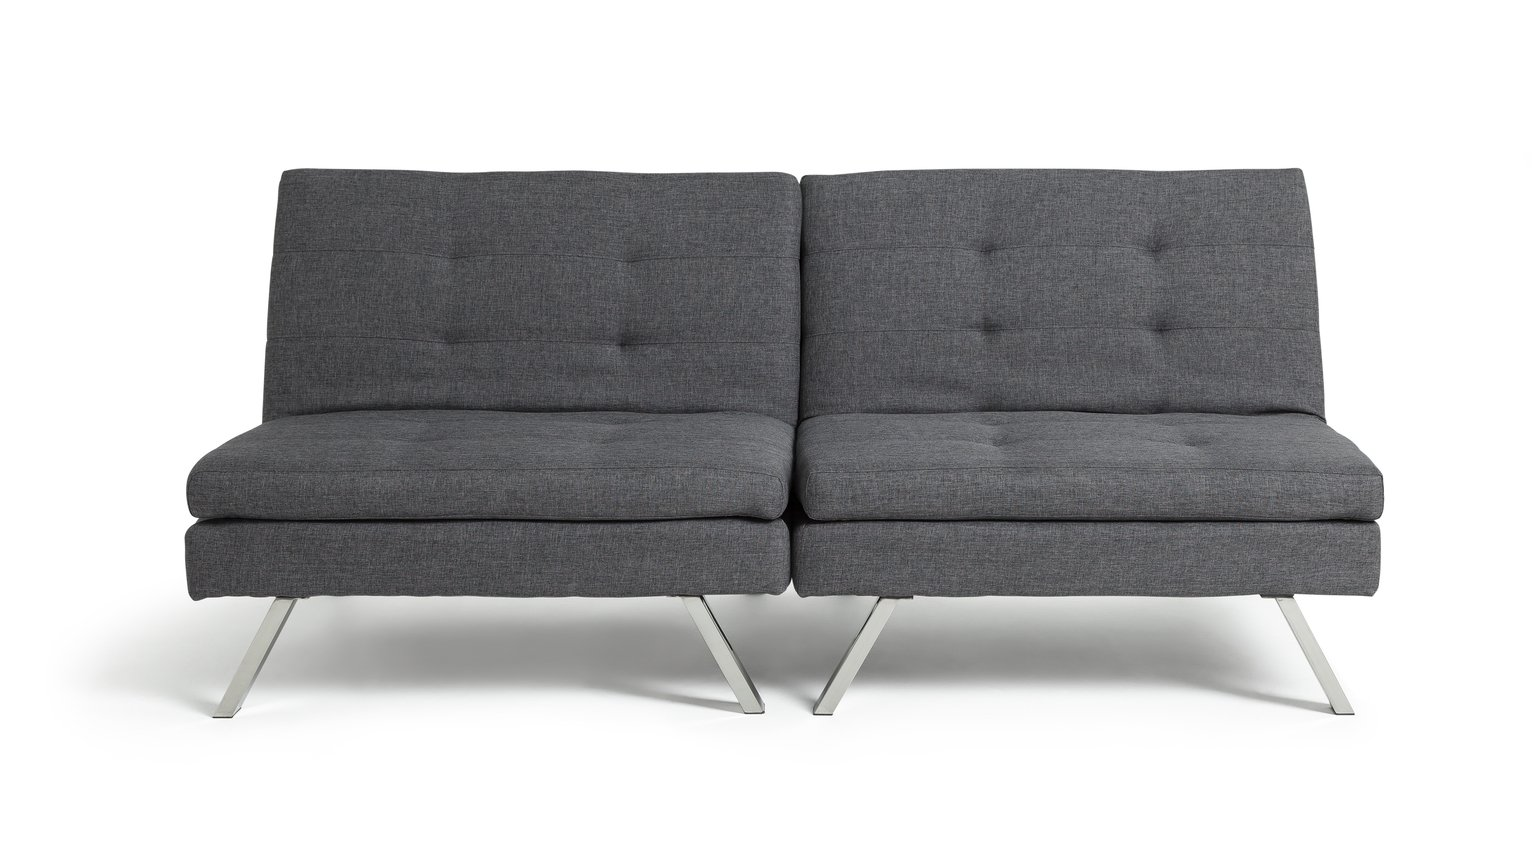 hygena duo 2 seater clic clac sofa bed charcoal